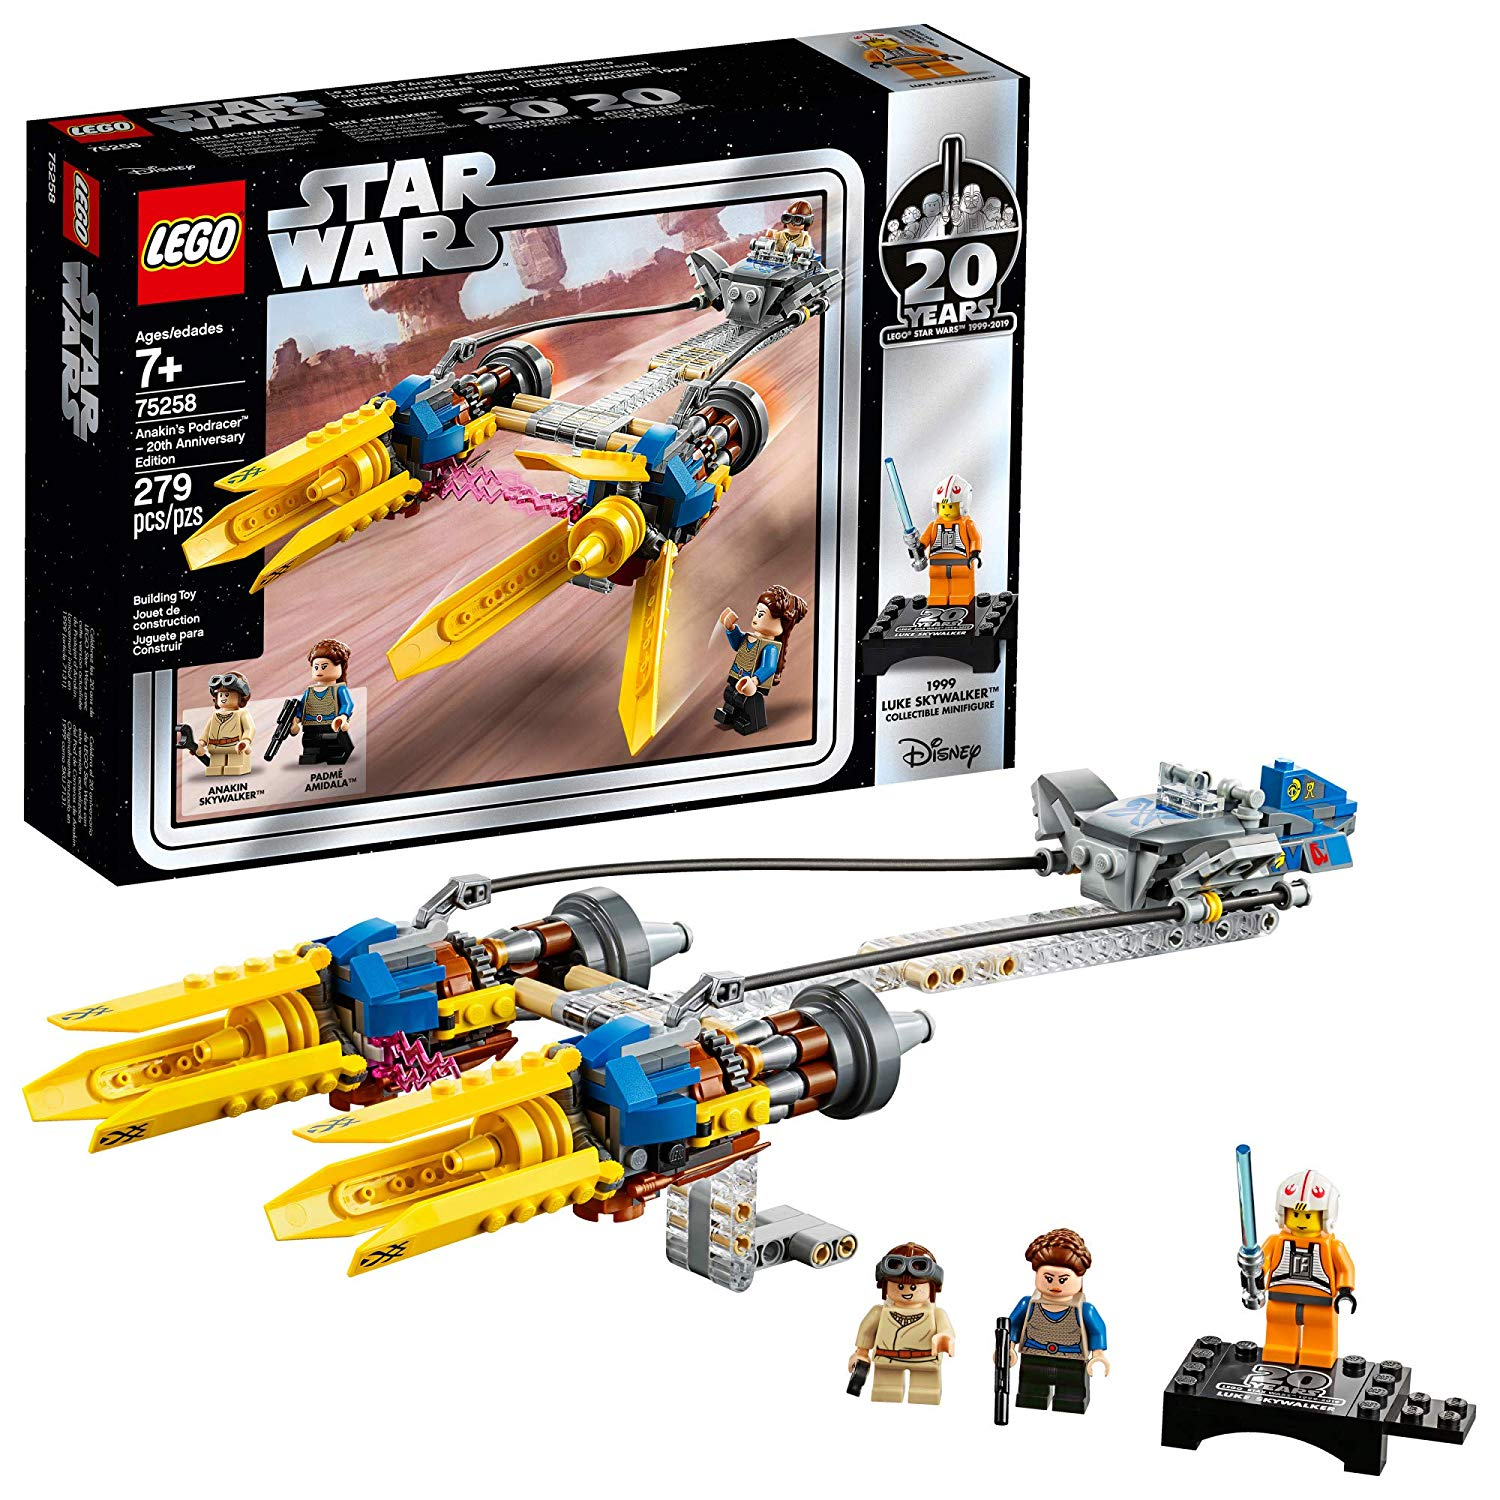 Lego Star Wars 20th Anniversary Sets Celebrate 20 Years Since